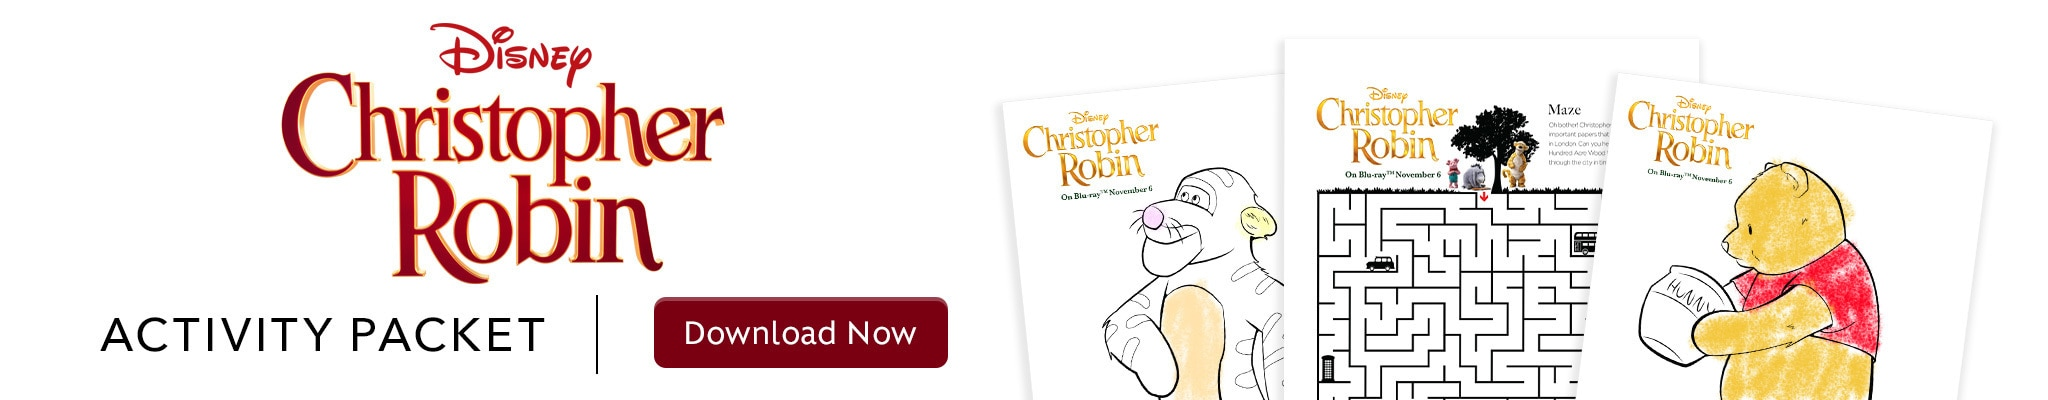 Christopher Robin - Activity Packet - Download Now